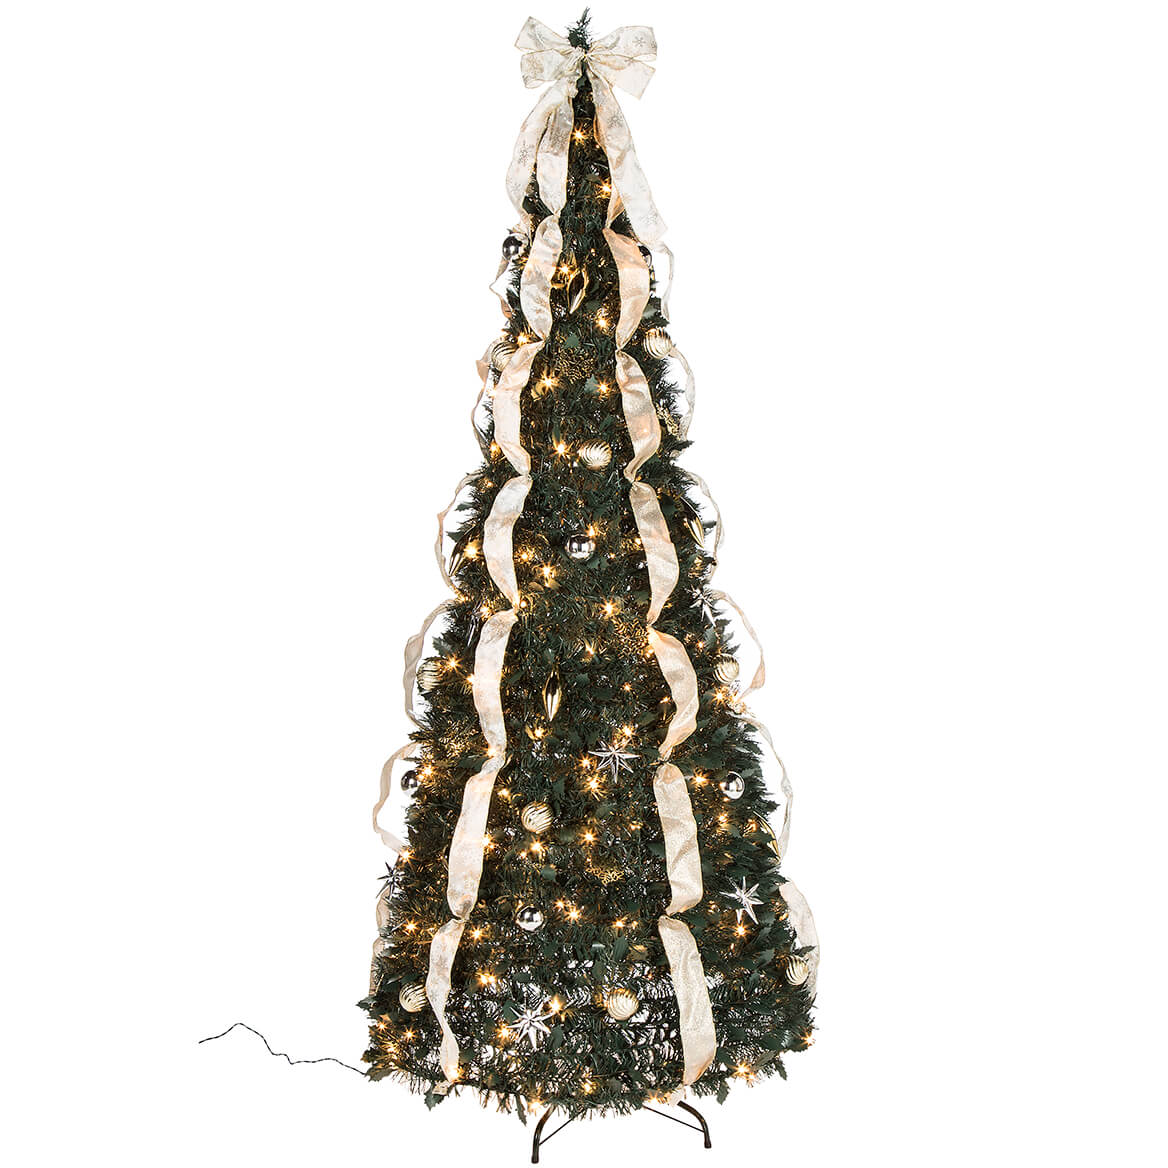 7' Silver & Gold Pull-Up Christmas Tree by Holiday Peak, Pre-Lit and Fully Decorated, Collapses for Easy Storage